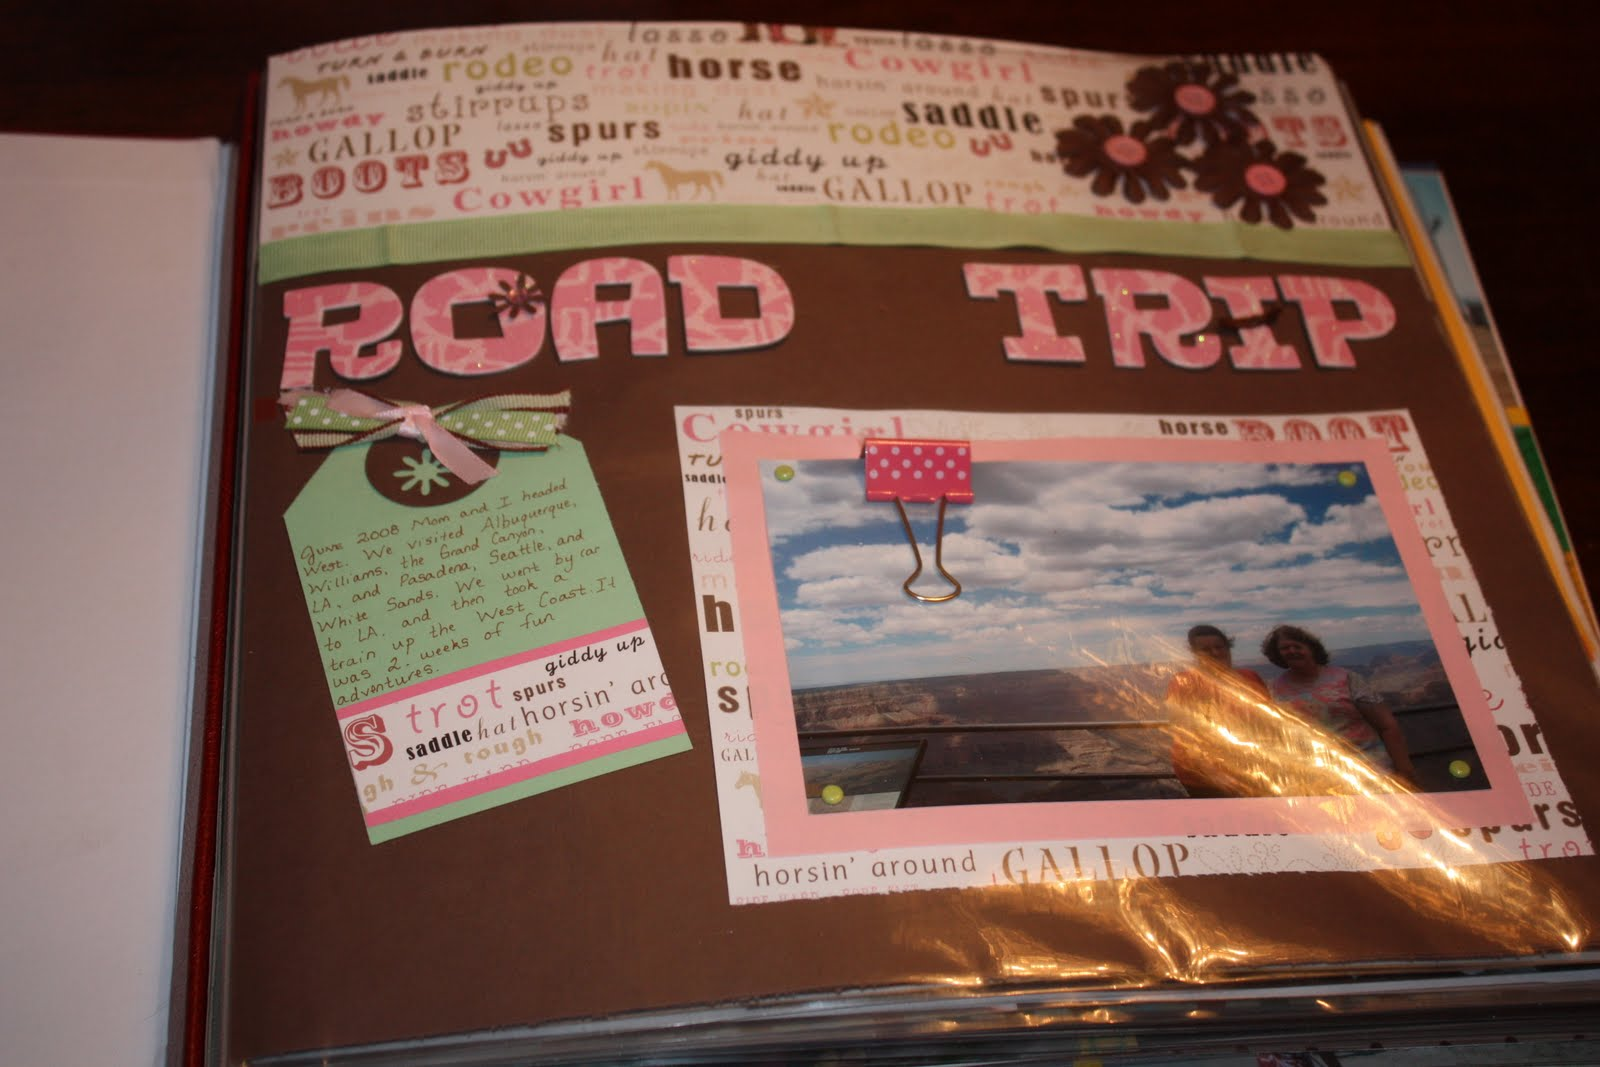 How to scrapbook a road trip -  This Next One Is A Ton Of Pictures From The Road I Made Them All Fit On One Page B C After A Week And A Half Of Road Travel